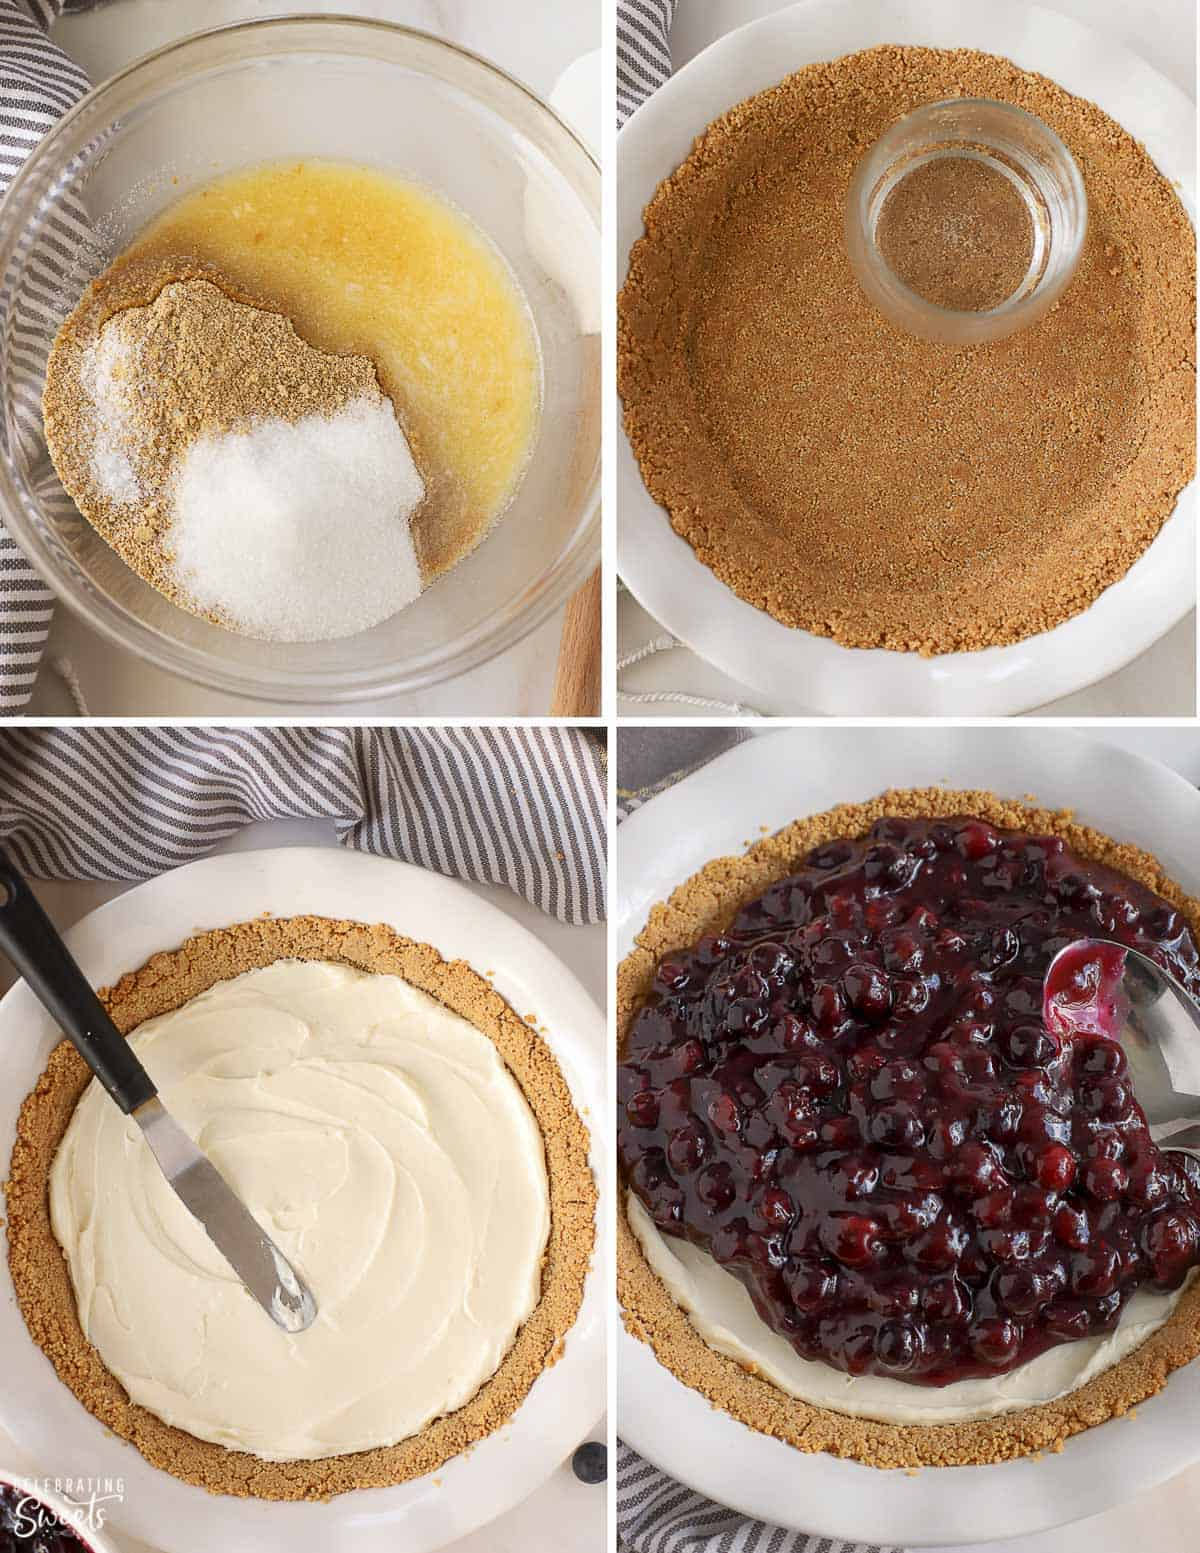 How to make blueberry pie: graham cracker crust, cream cheese filling, and blueberries.